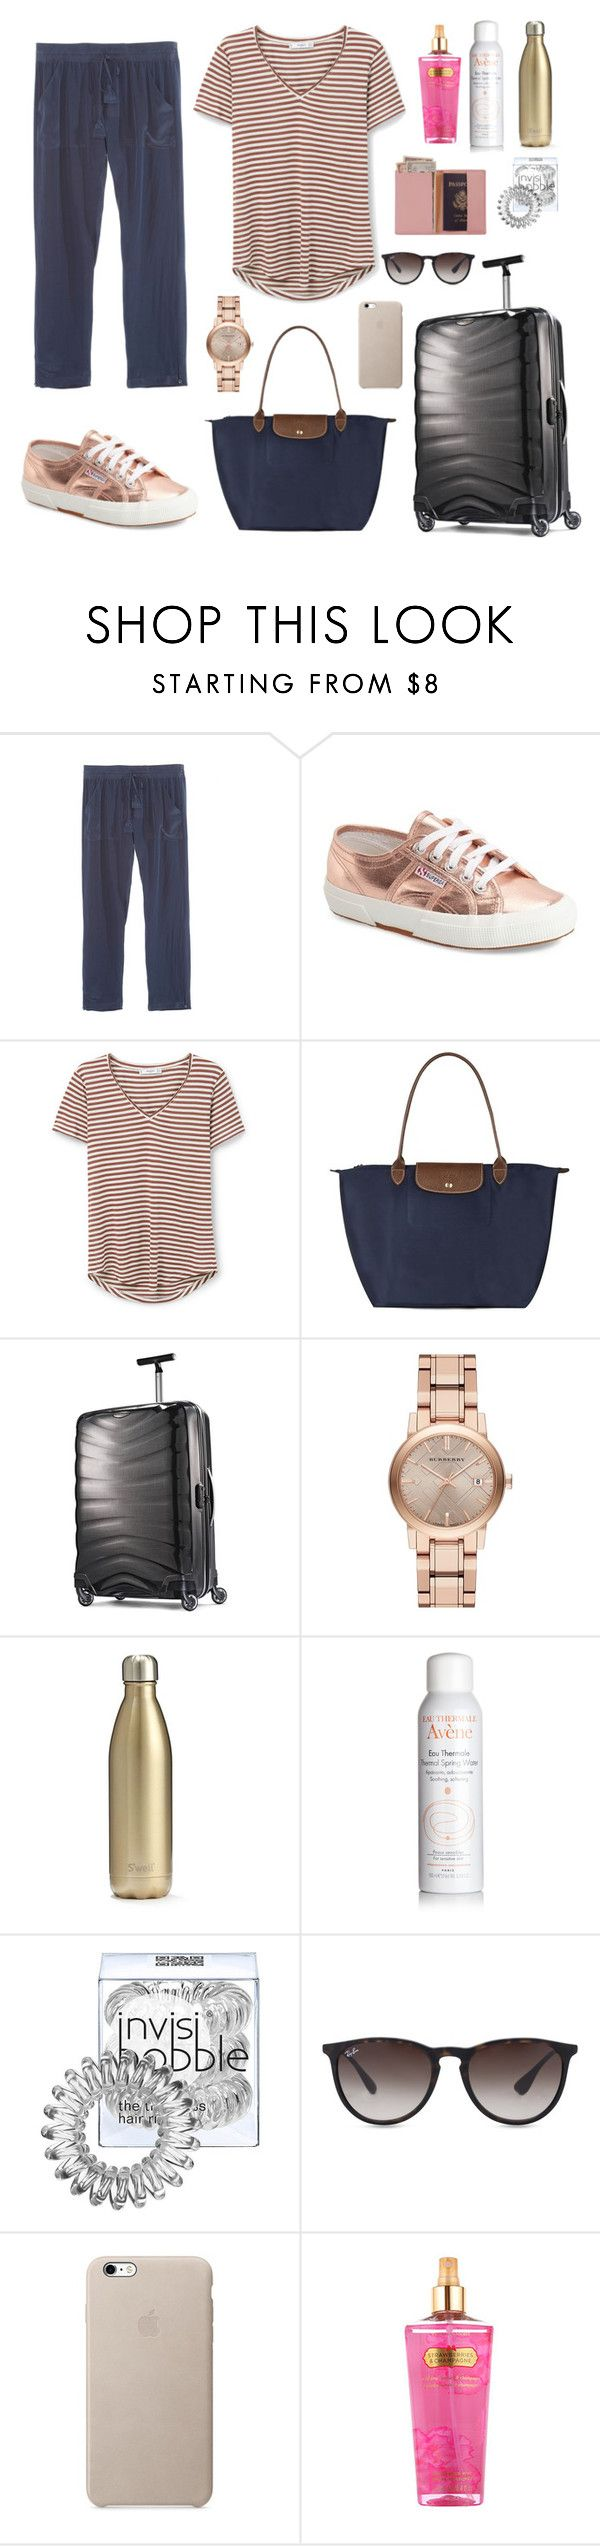 """Airport to Ibiza✈️☀️"" by cstyles ❤ liked on Polyvore featuring Calypso St. Barth, Superga, MANGO, Longchamp, Samsonite, Burberry, S'well, Avène, Invisibobble and Ray-Ban"